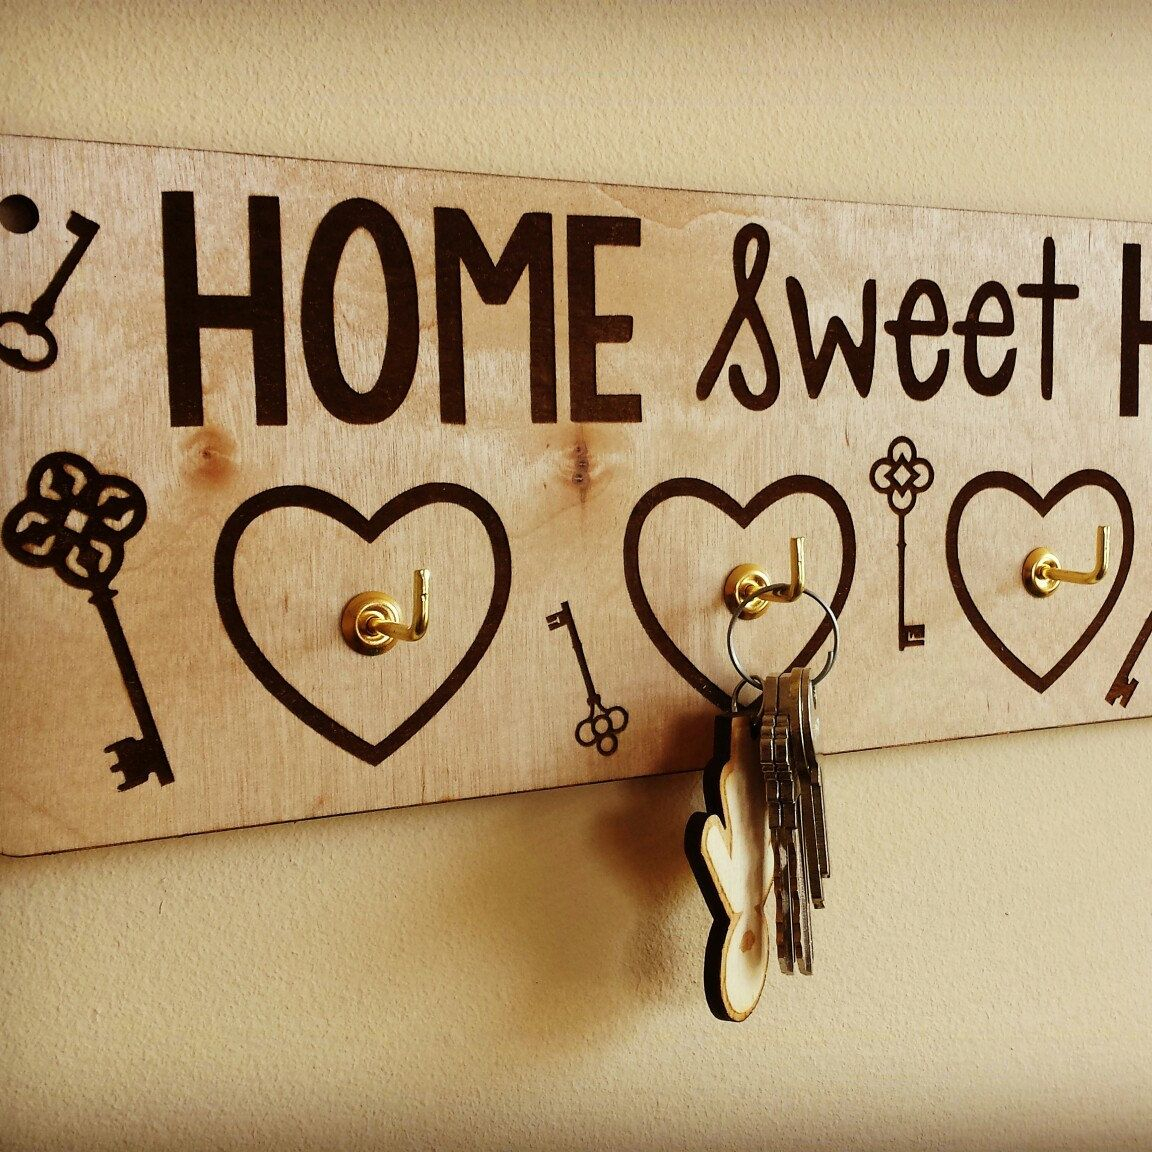 Home Laser Cut Engraved Key Holder For Wall – Wooden Key With Laser Engraved Home Sweet Home Wall Decor (View 20 of 30)